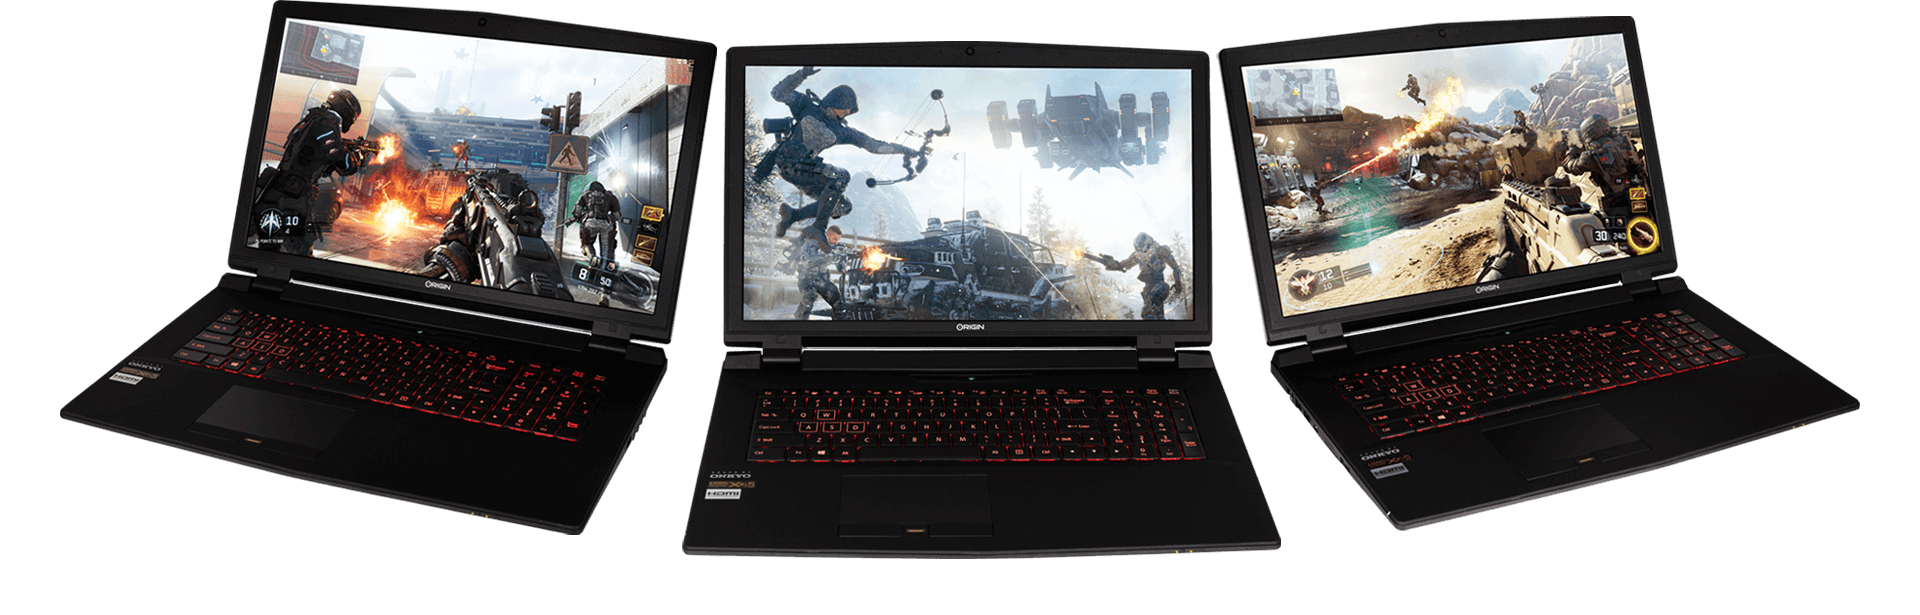 EON17-X gaming laptops